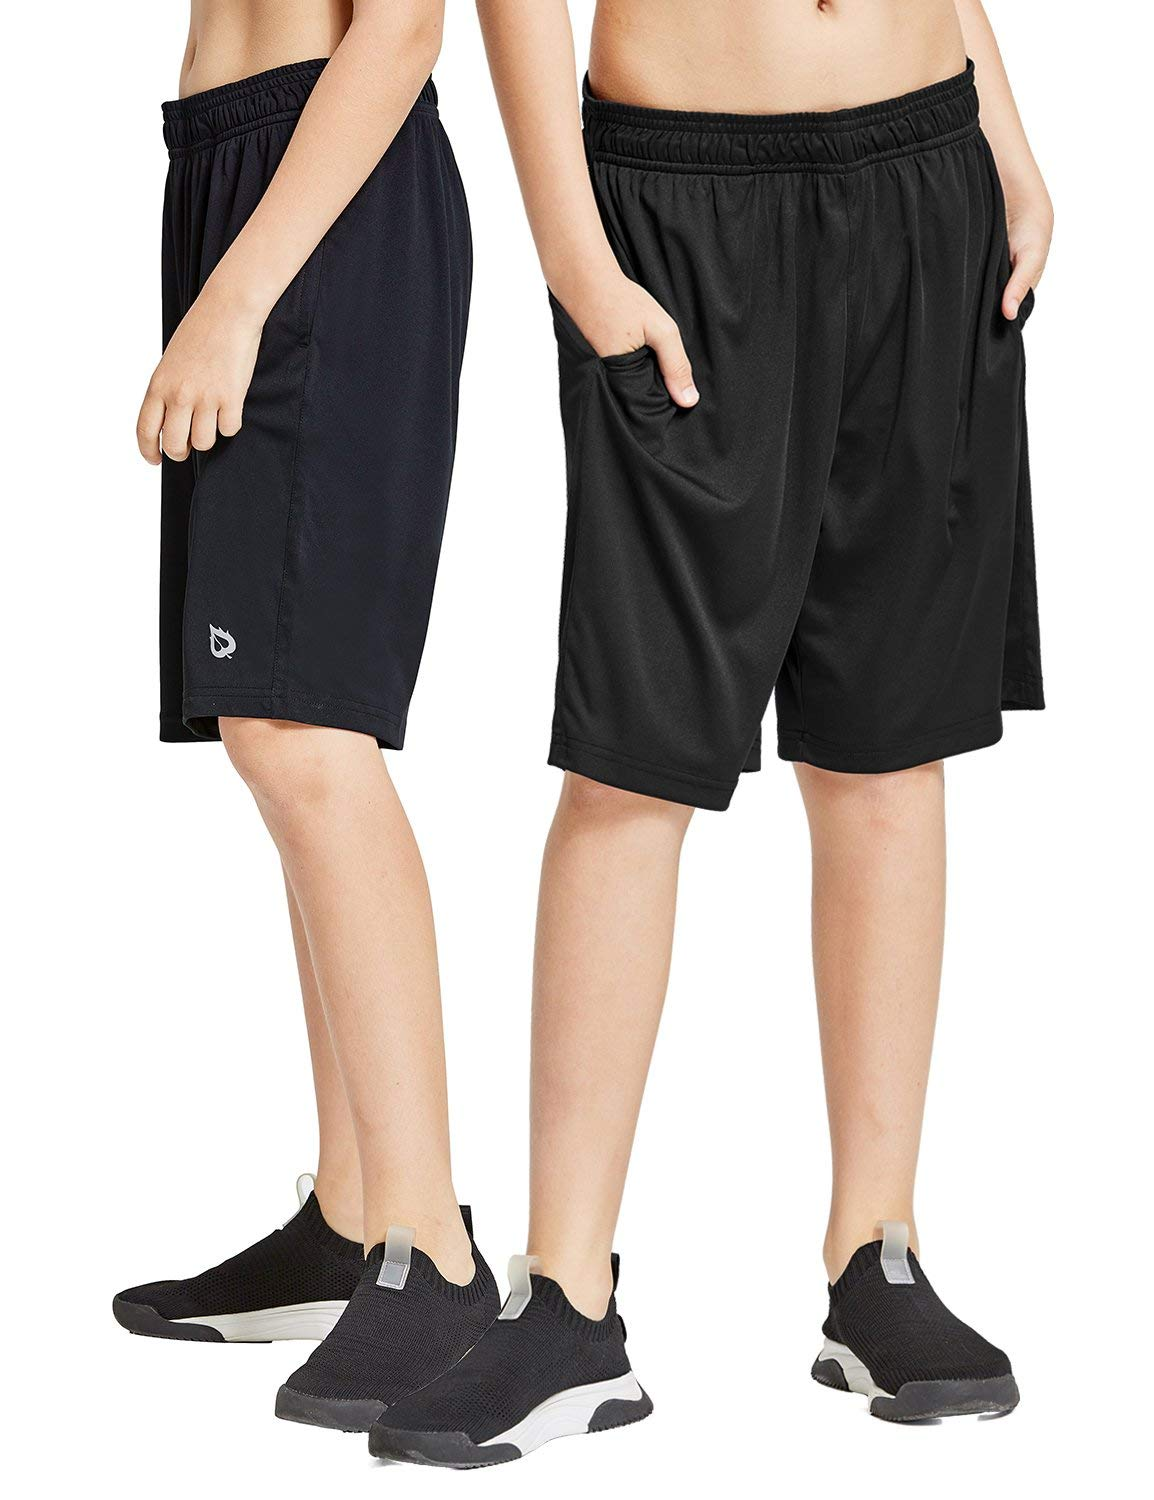 Baleaf Youth Boys' Athletic Running Shorts Pockets Tennis Volleyball Shorts Pack of 2 Black/Black Size S by Baleaf